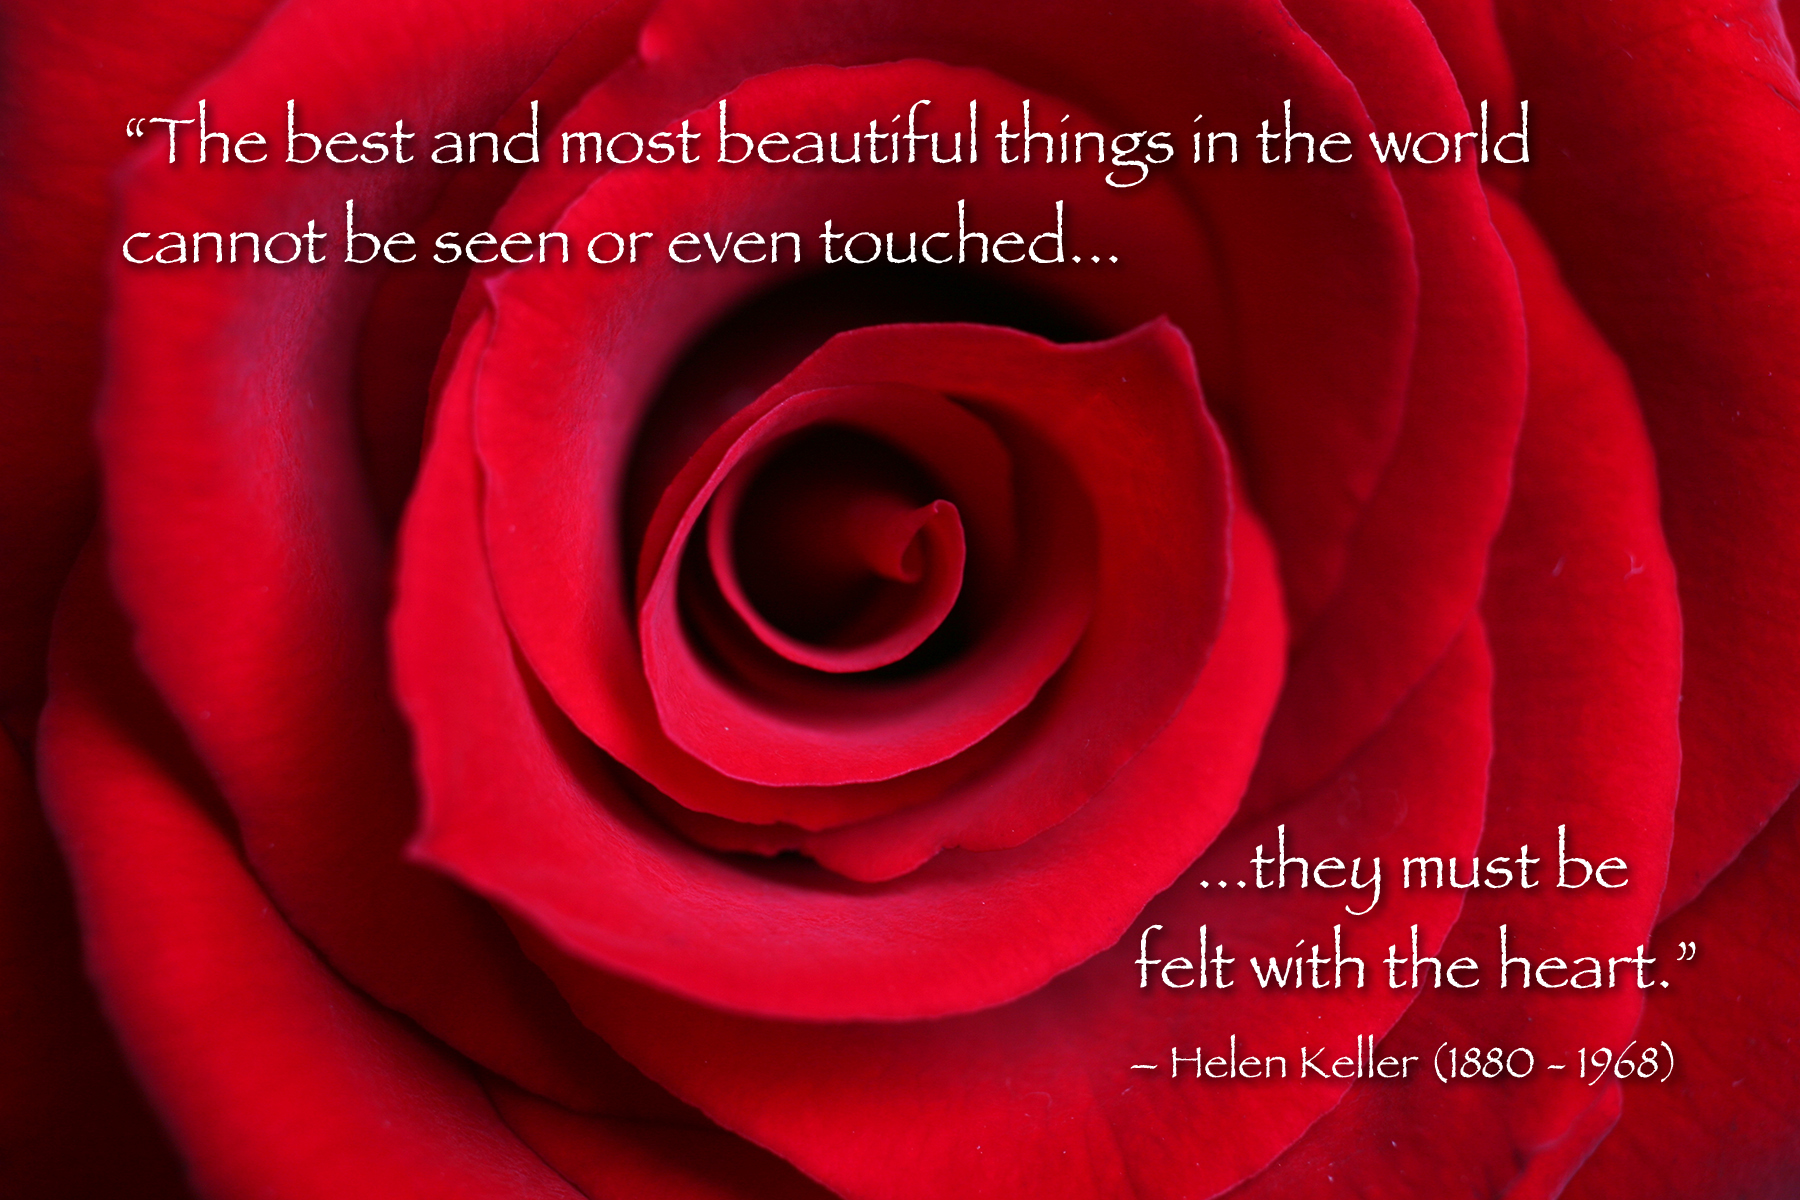 All Sizes Red Rose Macro With Helen Keller Quote Flickr Photo